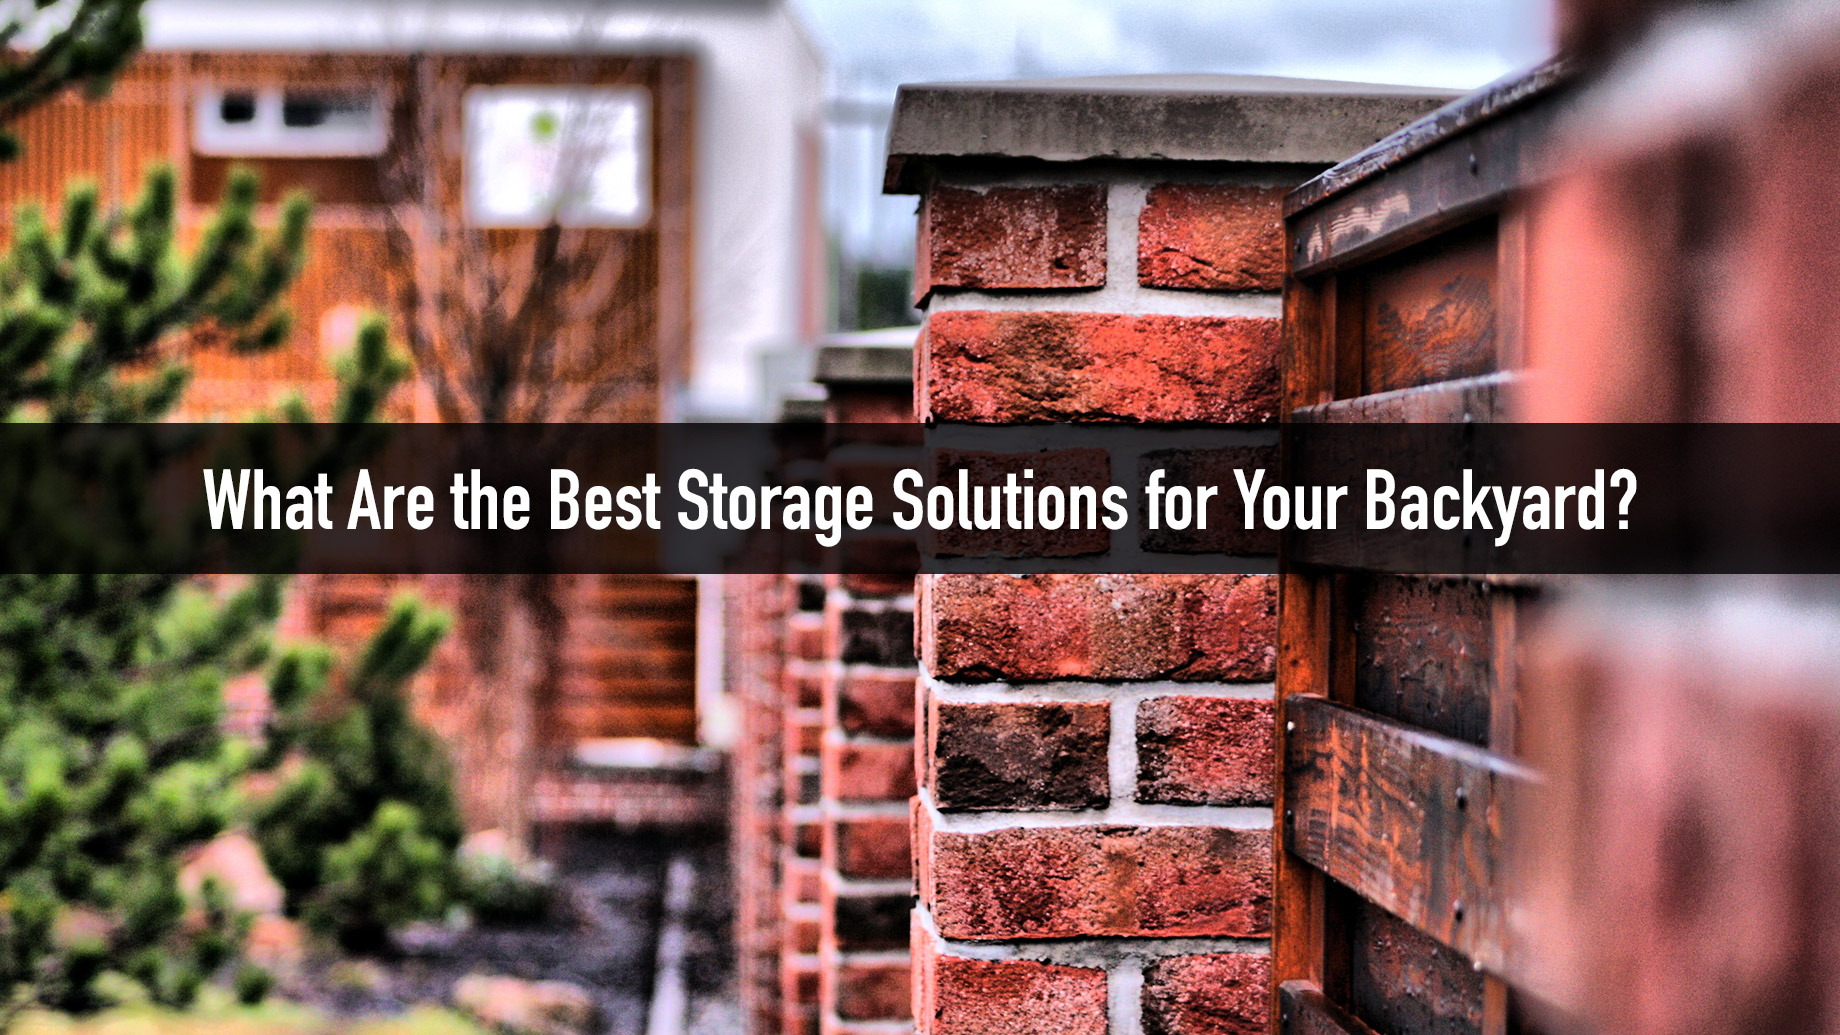 What Are the Best Storage Solutions for Your Backyard?